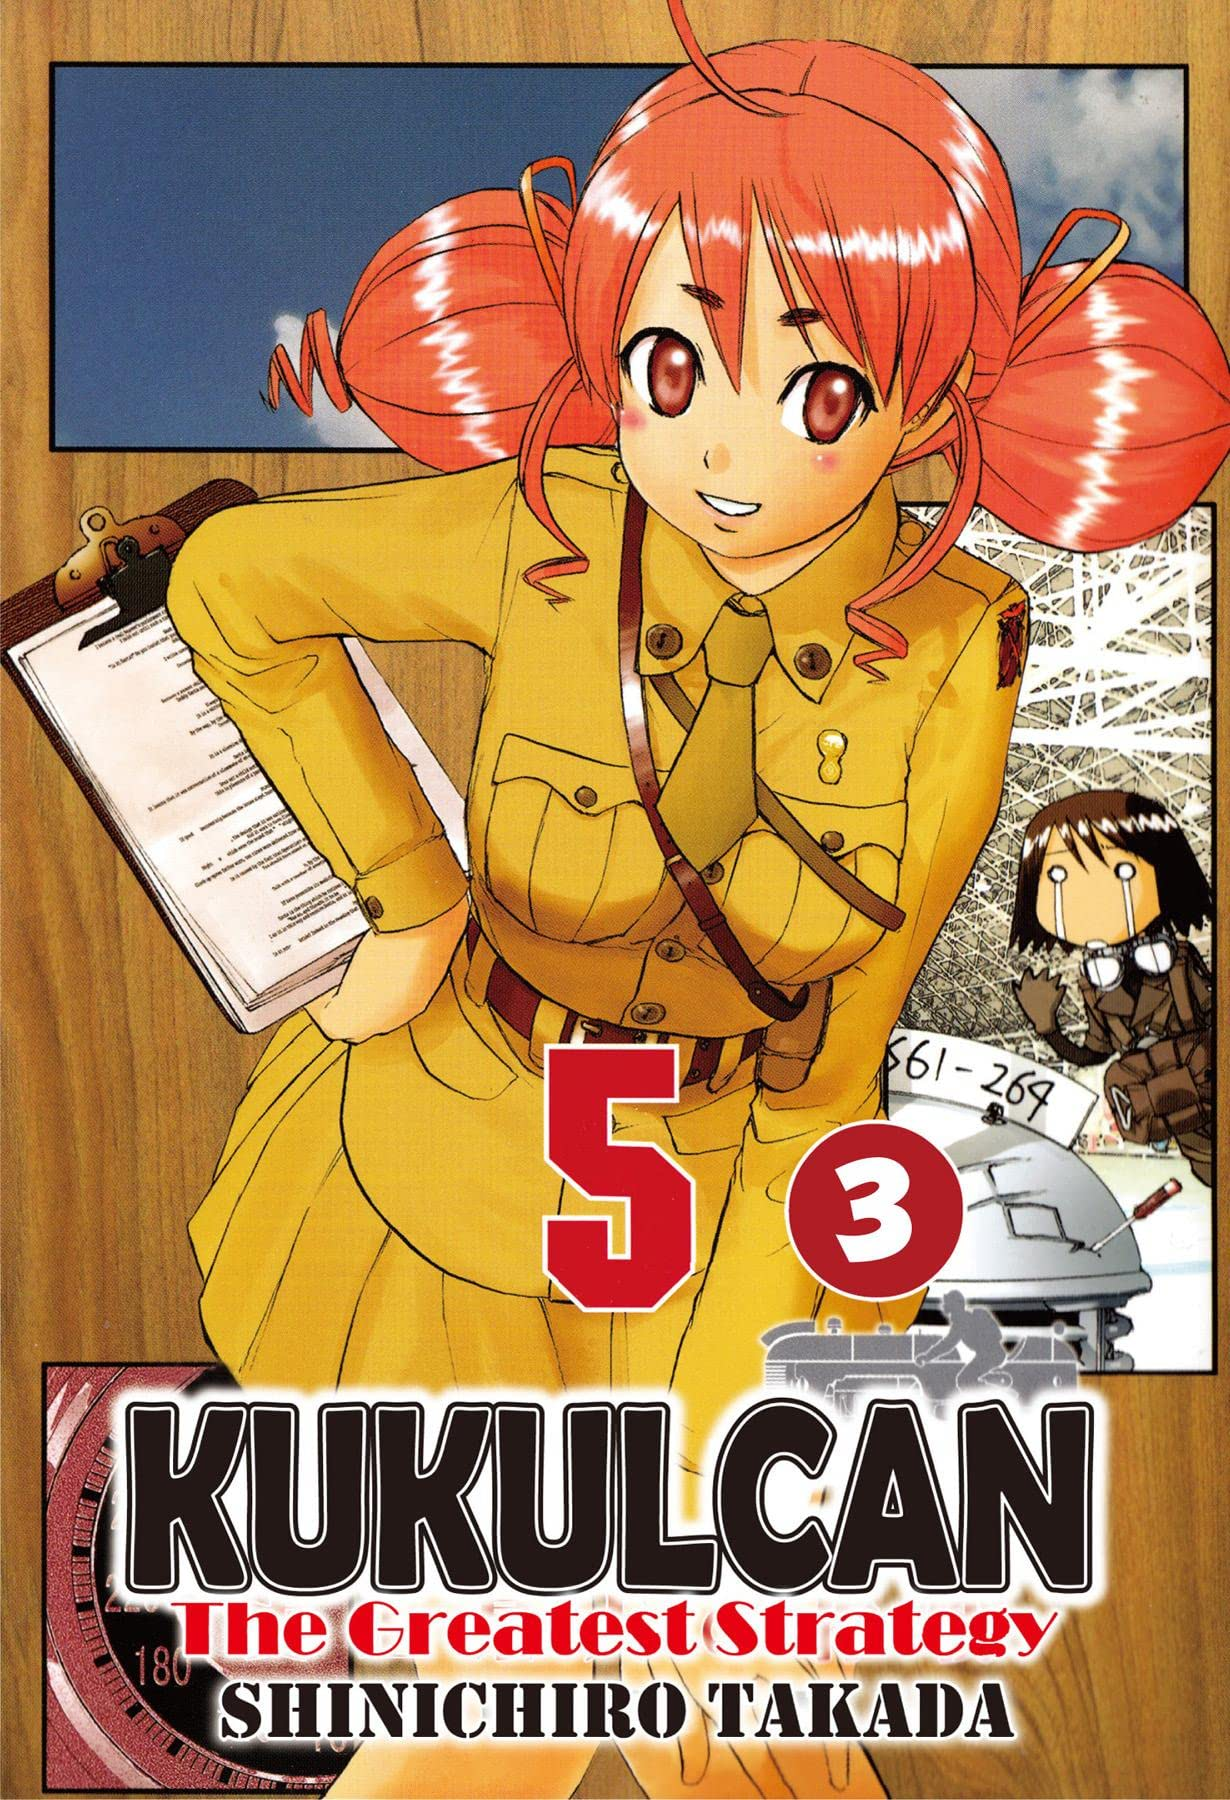 KUKULCAN The Greatest Strategy #31